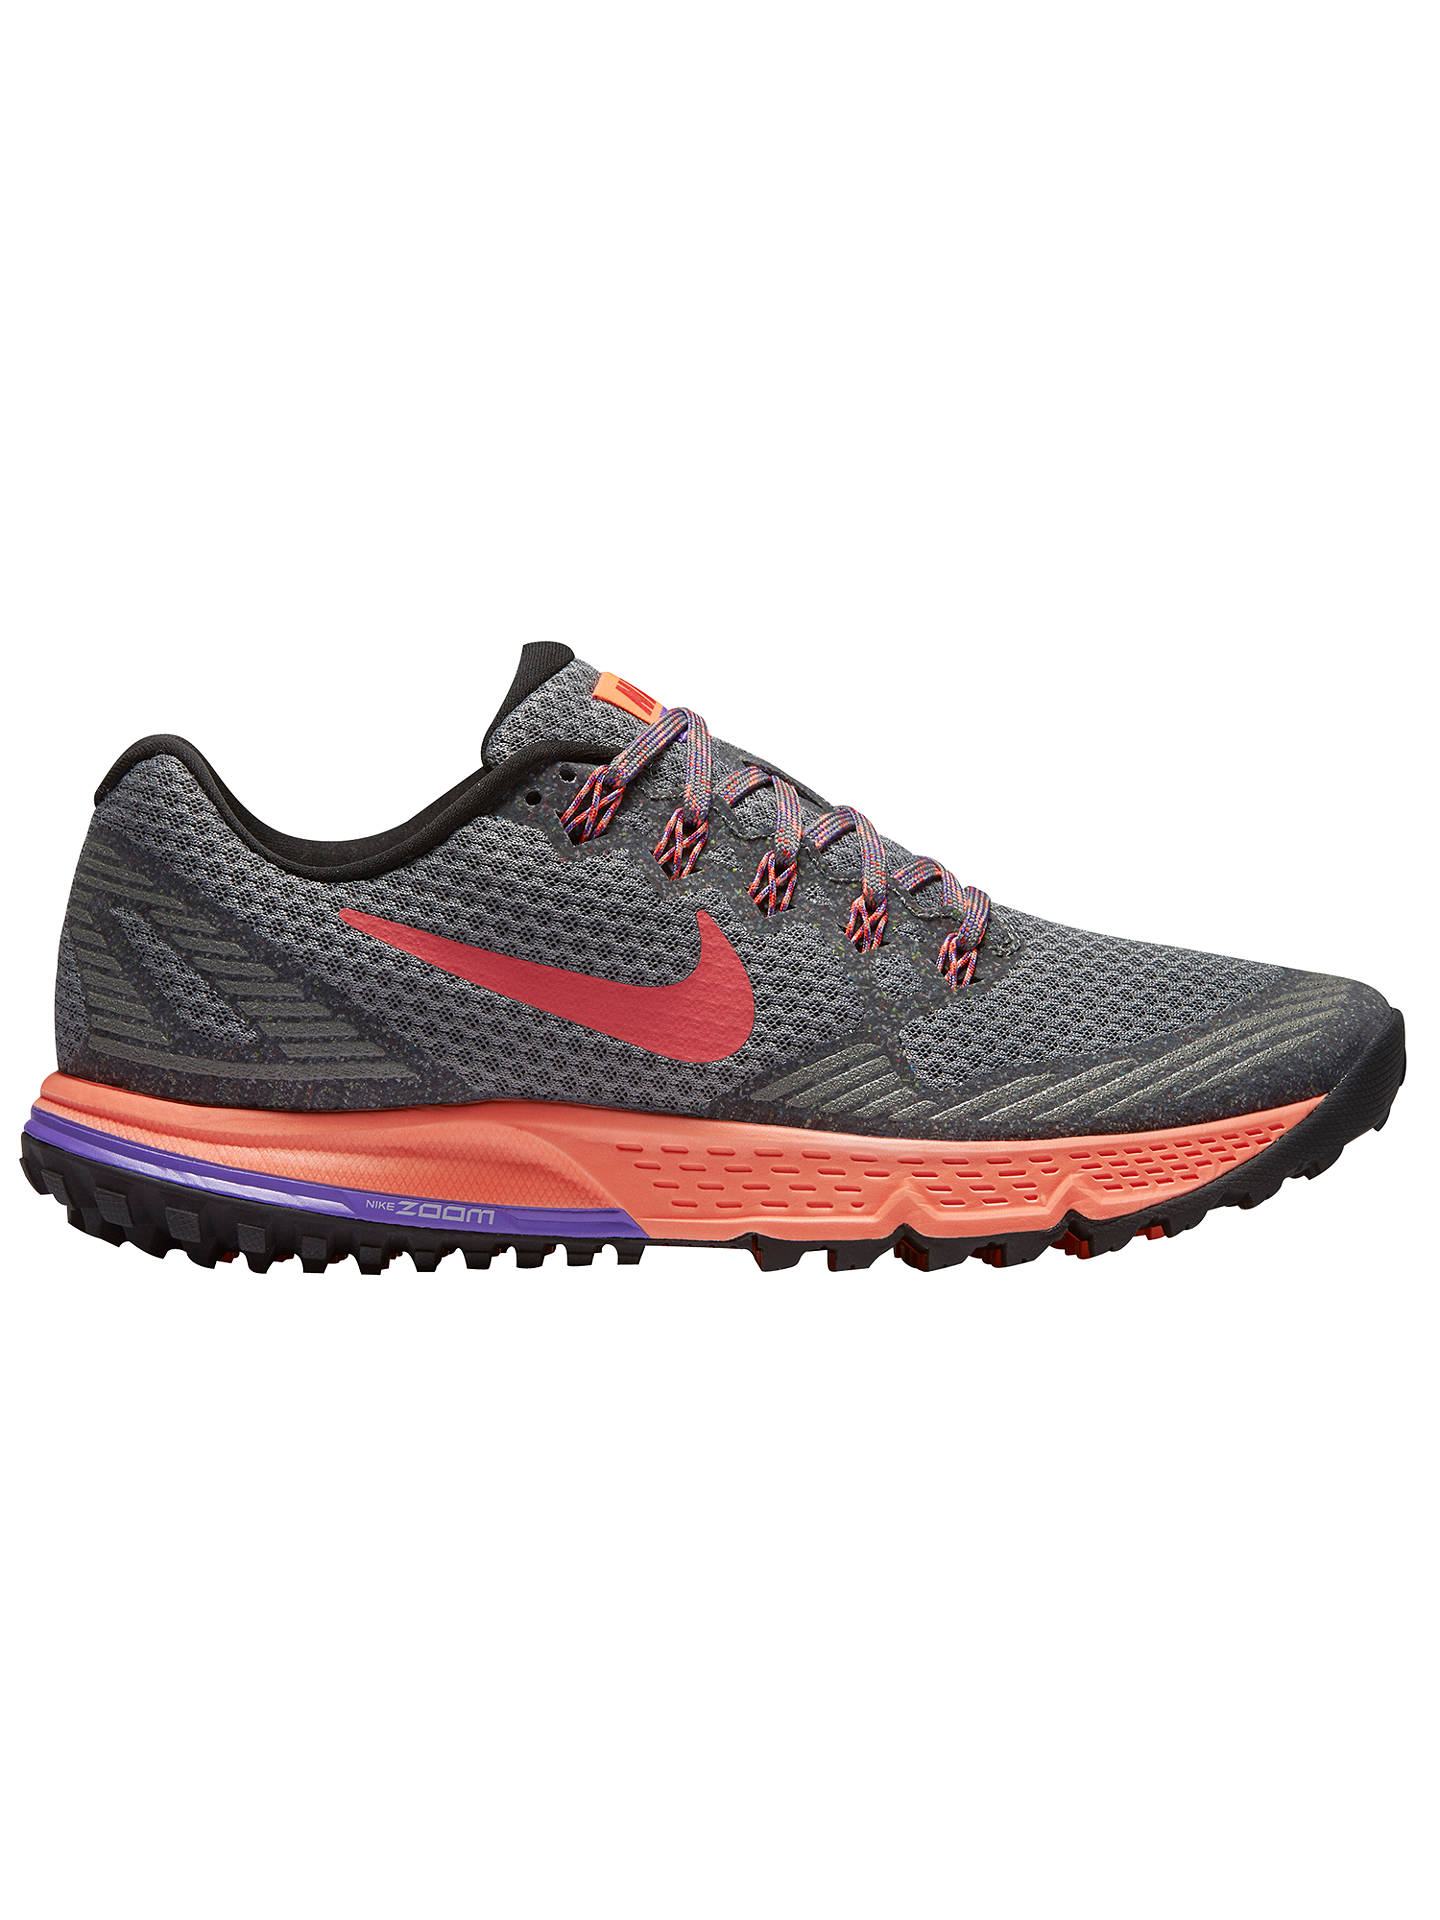 fafff6e9aa5db Nike Air Zoom Wildhorse 3 Women s Running Shoes at John Lewis   Partners